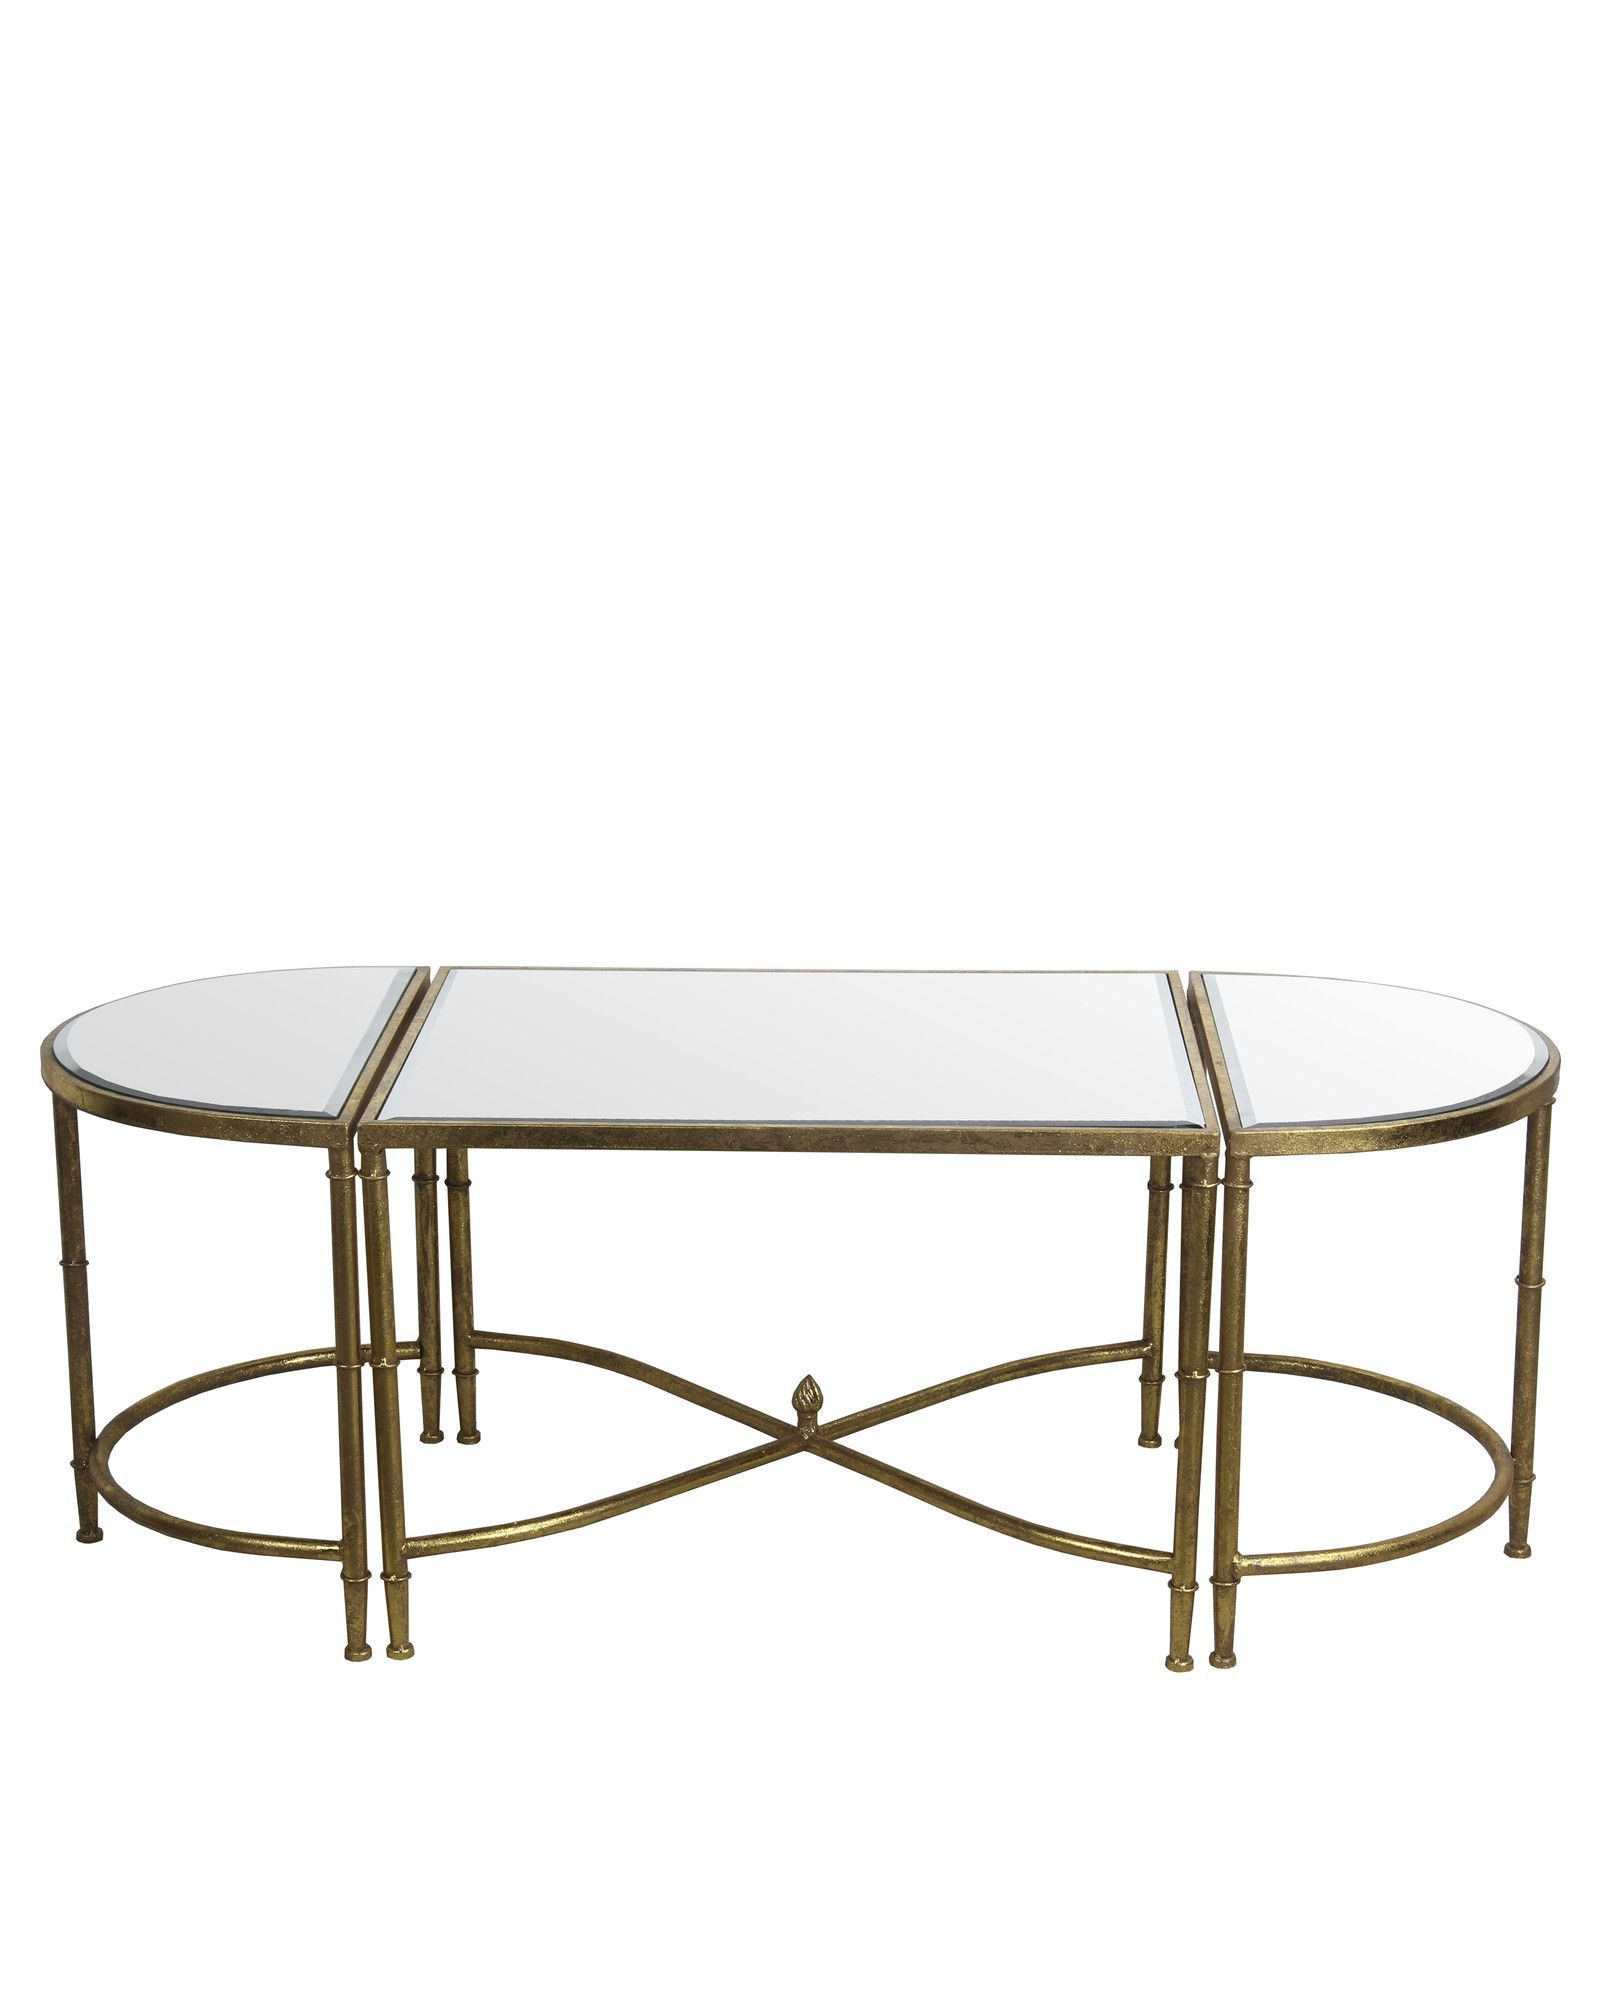 Malonne 3 Piece Coffee Table Set | Products | Pinterest | Products